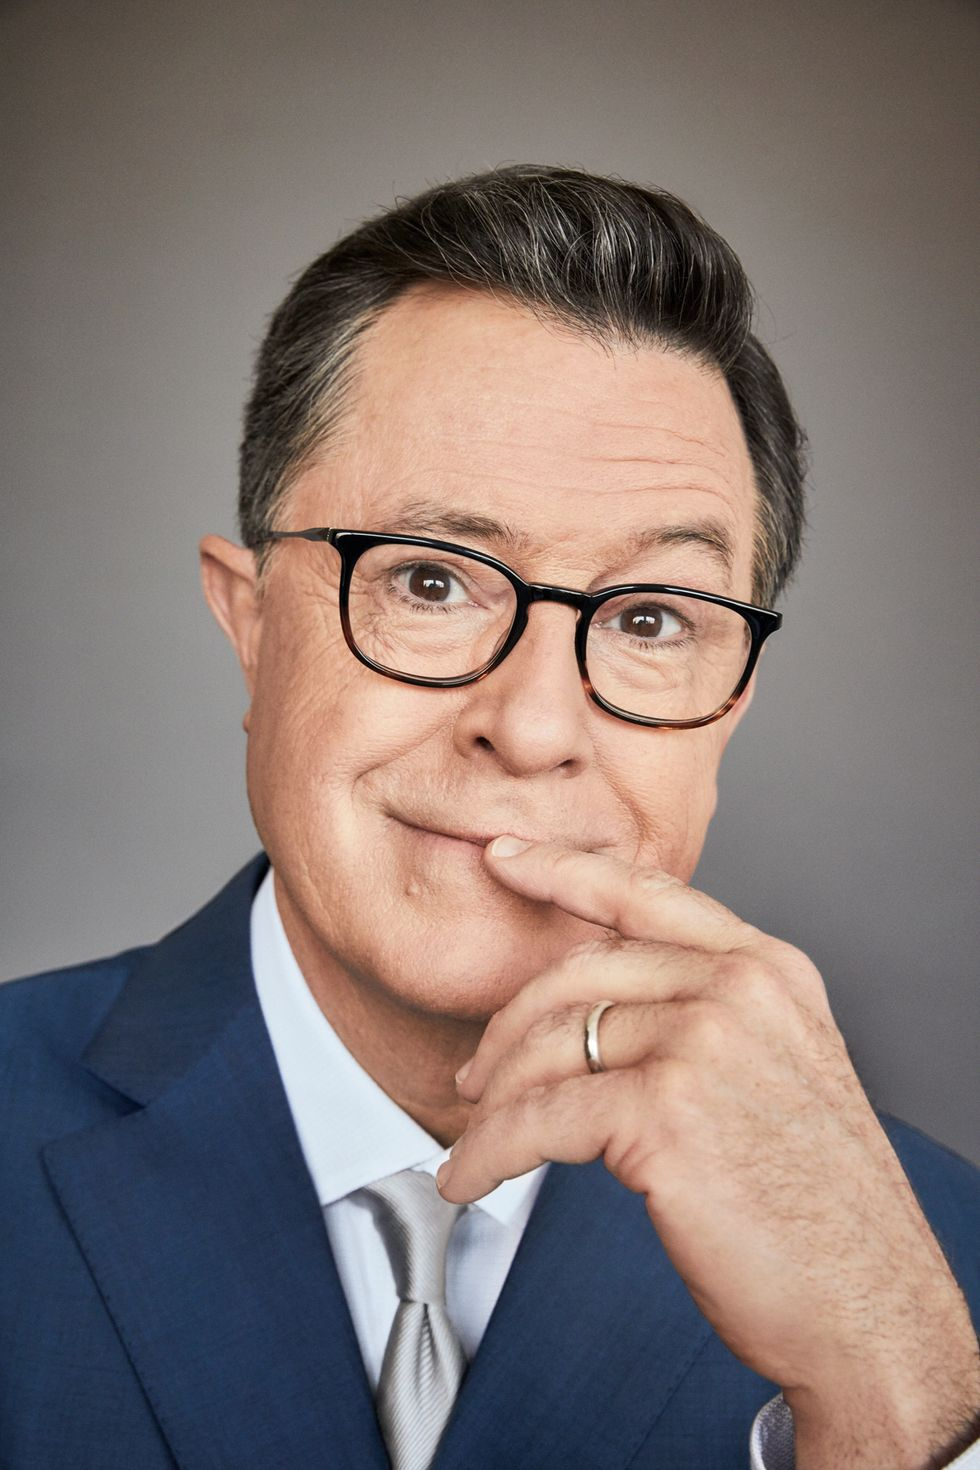 Close-up portrait of Stephen Colbert with his index finger to his lips.